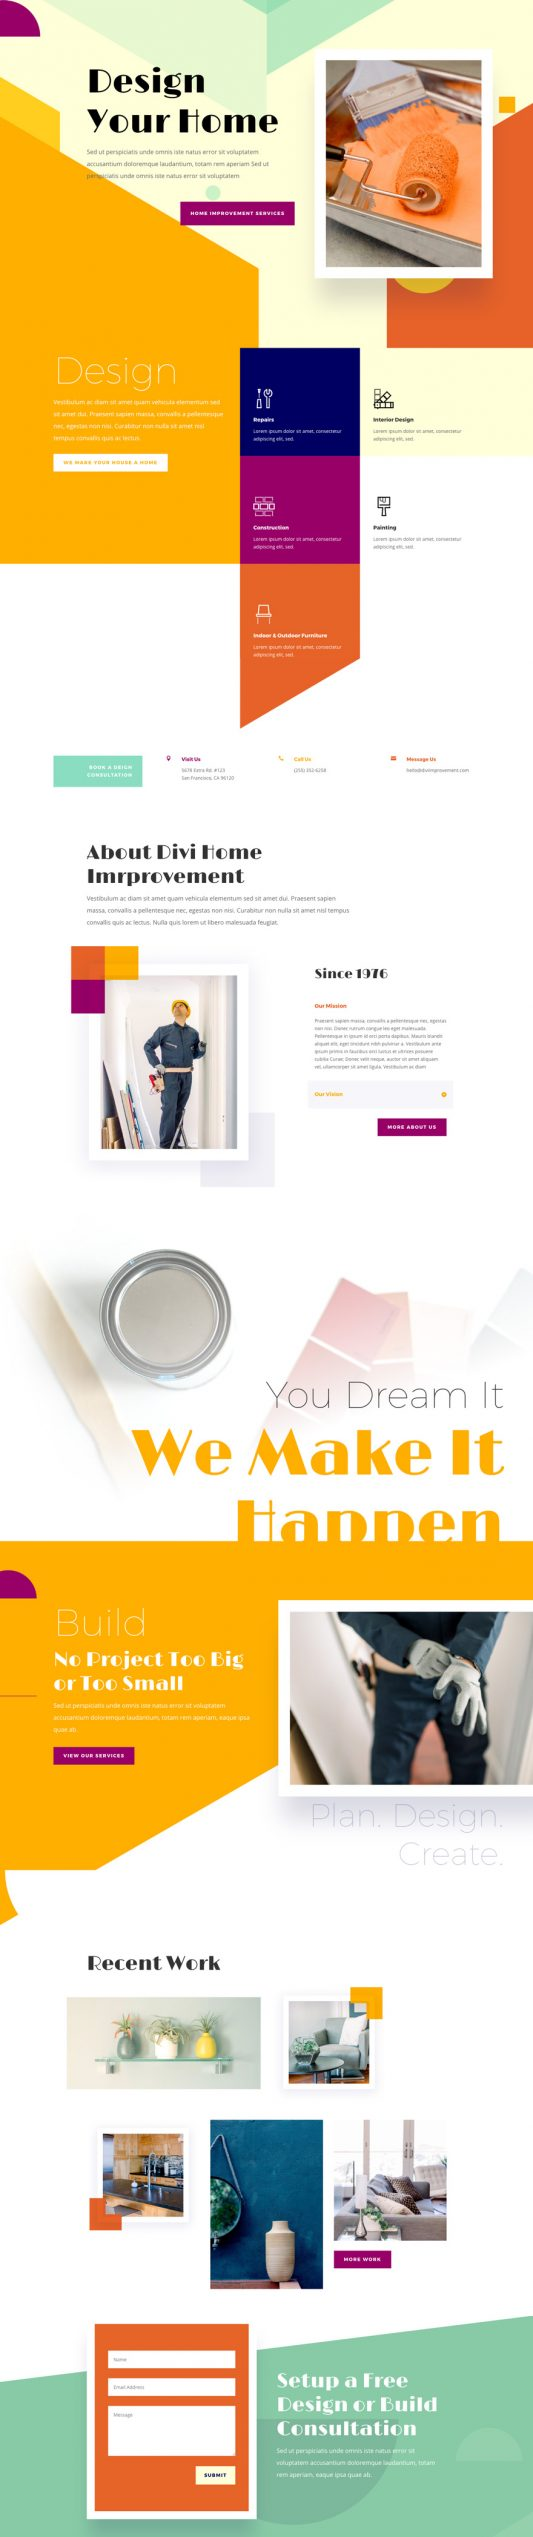 Home Improvement Landing Page